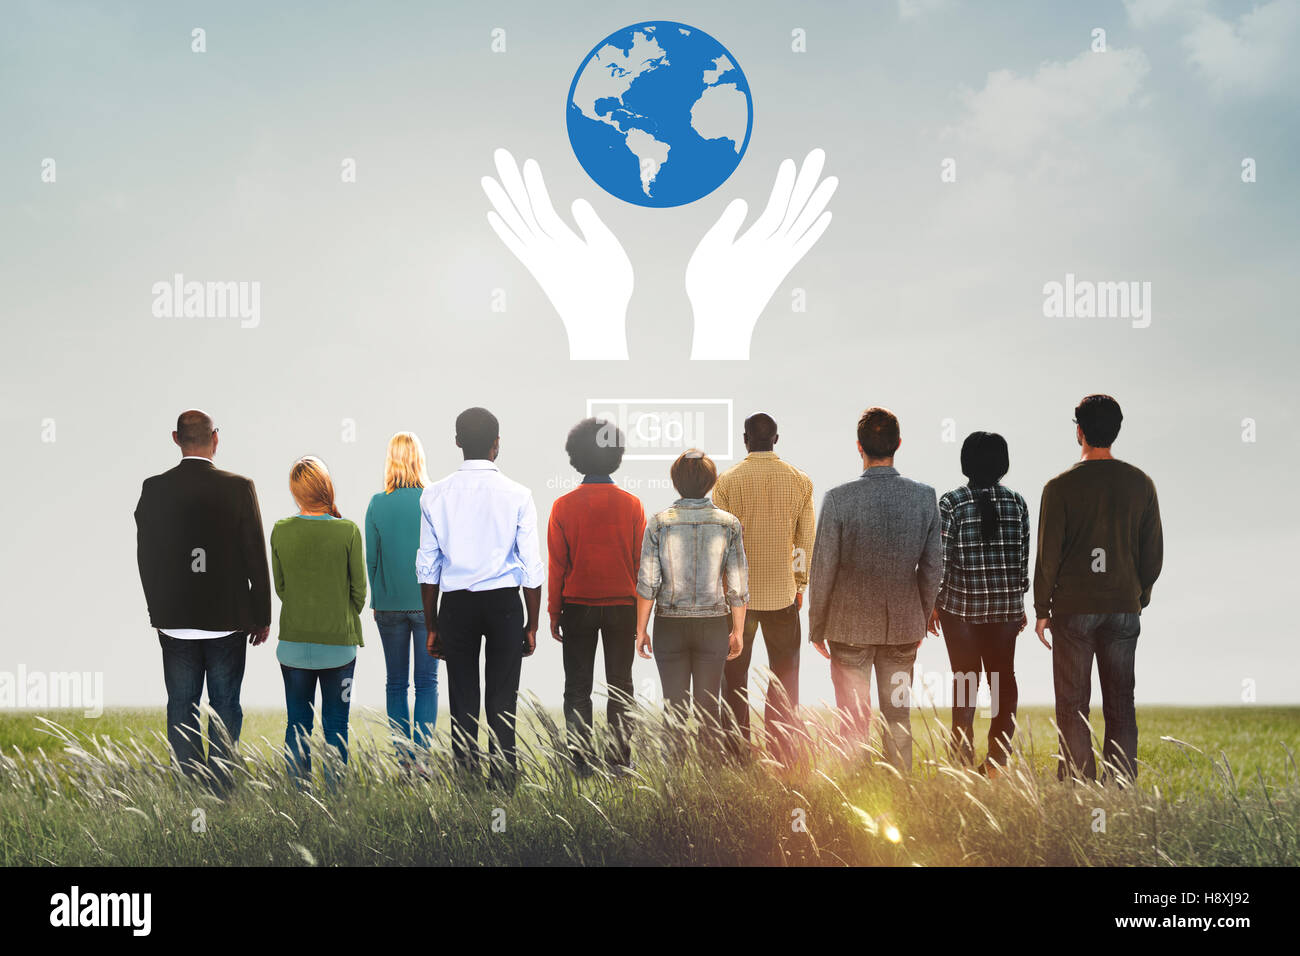 Global Prosperity Protect Earth Care Concept - Stock Image